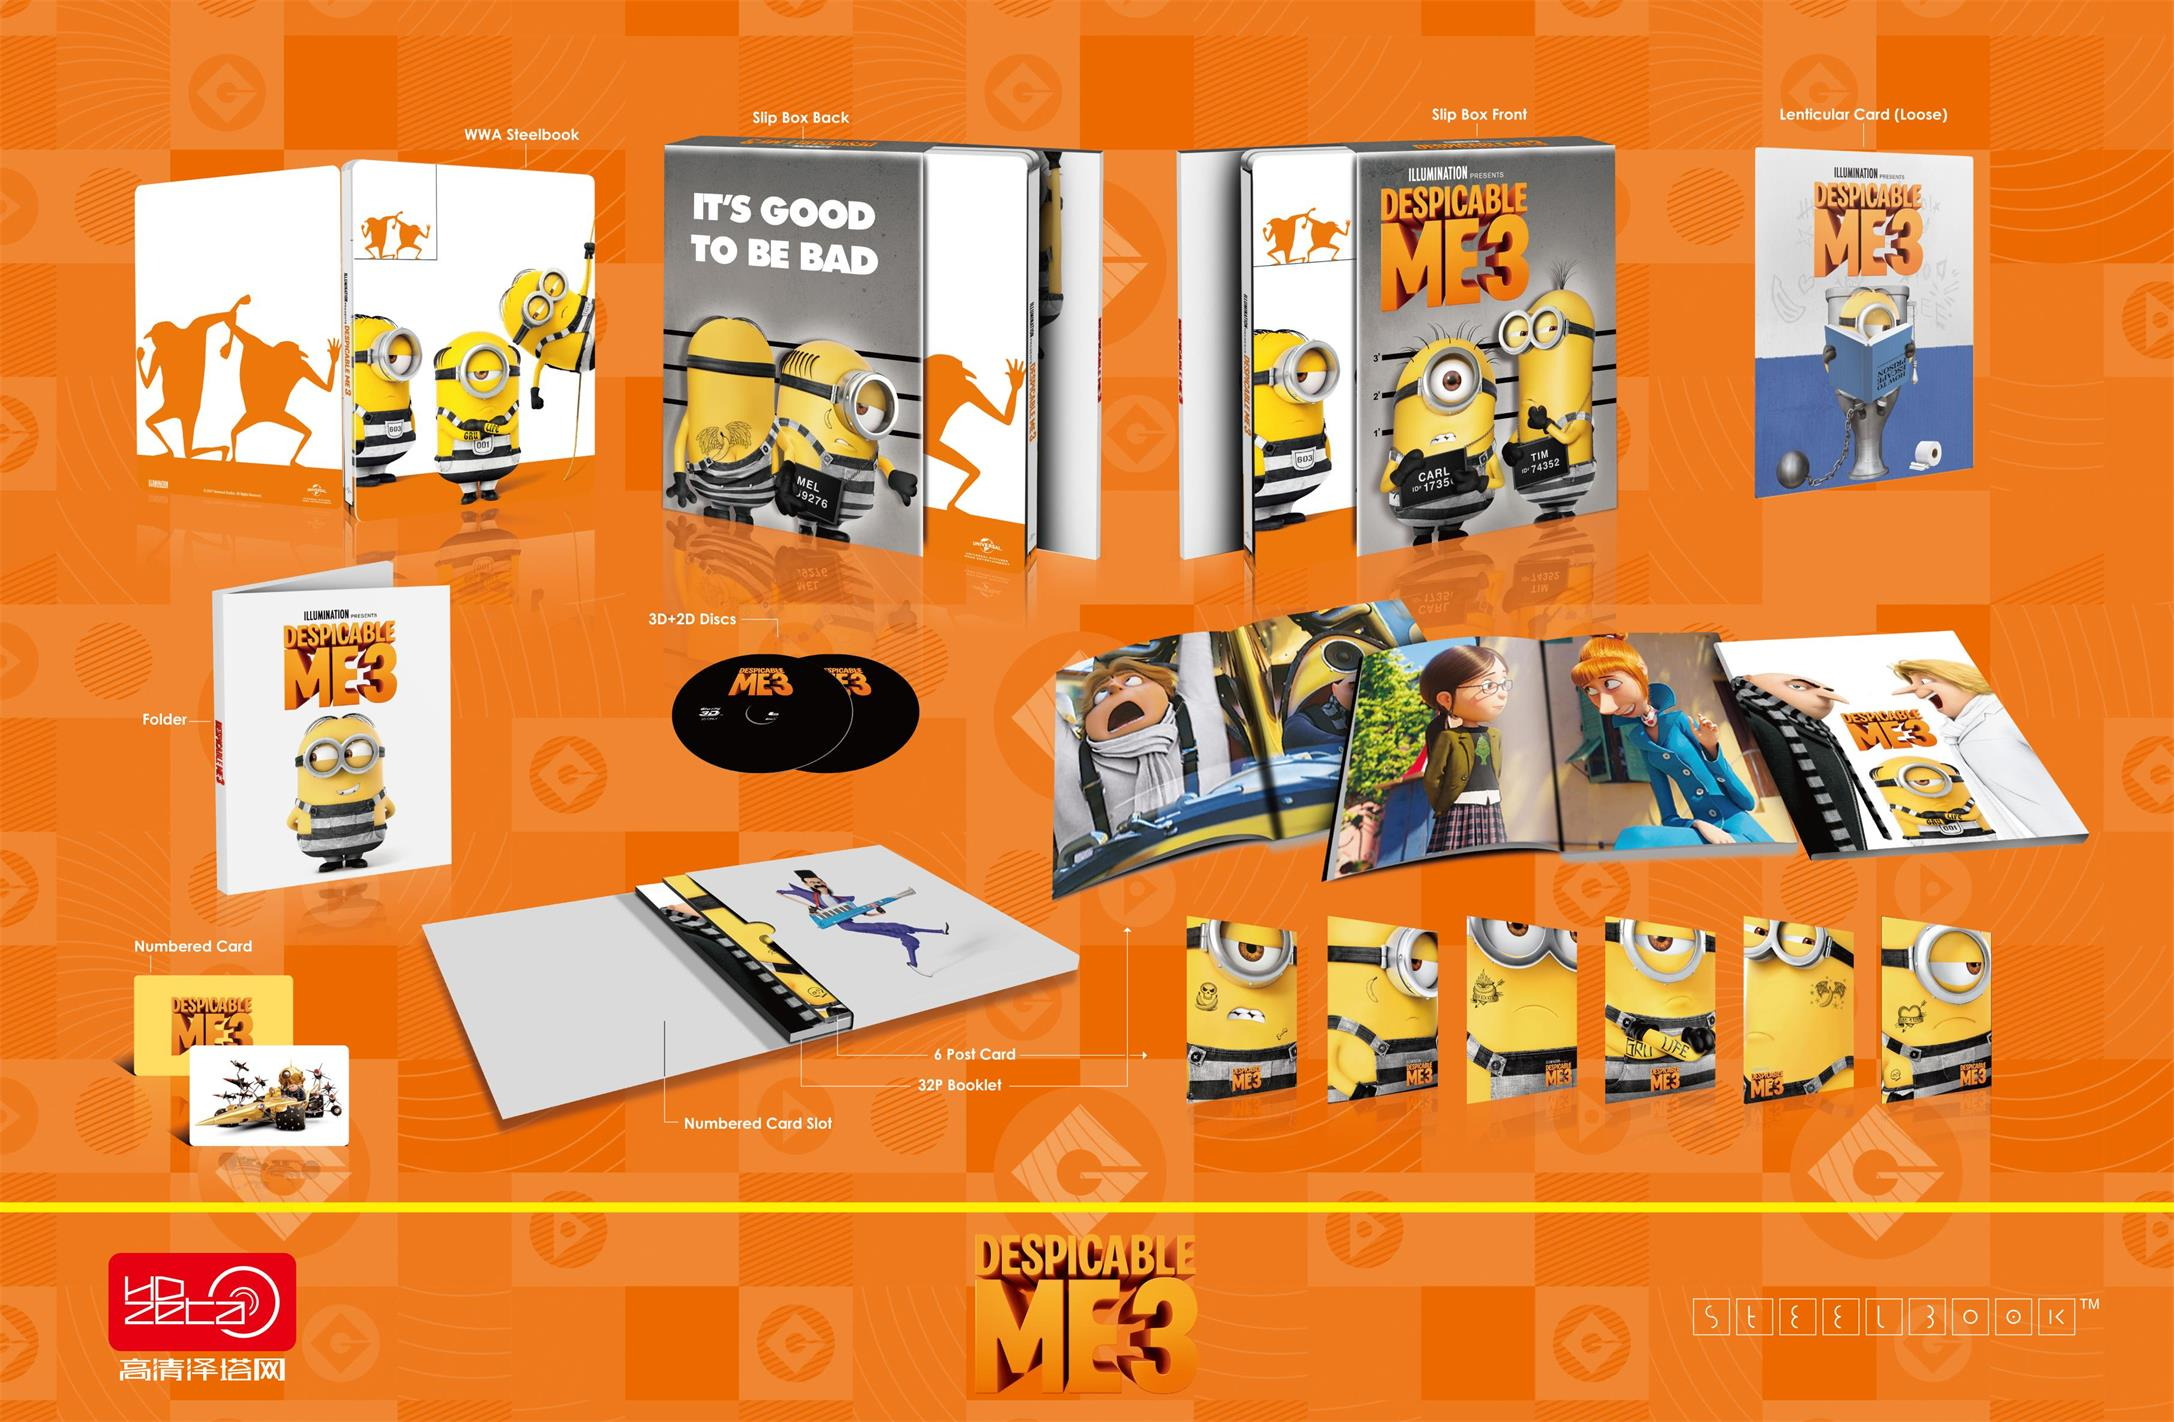 Despicable Me 3 HDzeta Silver Label Special Edition